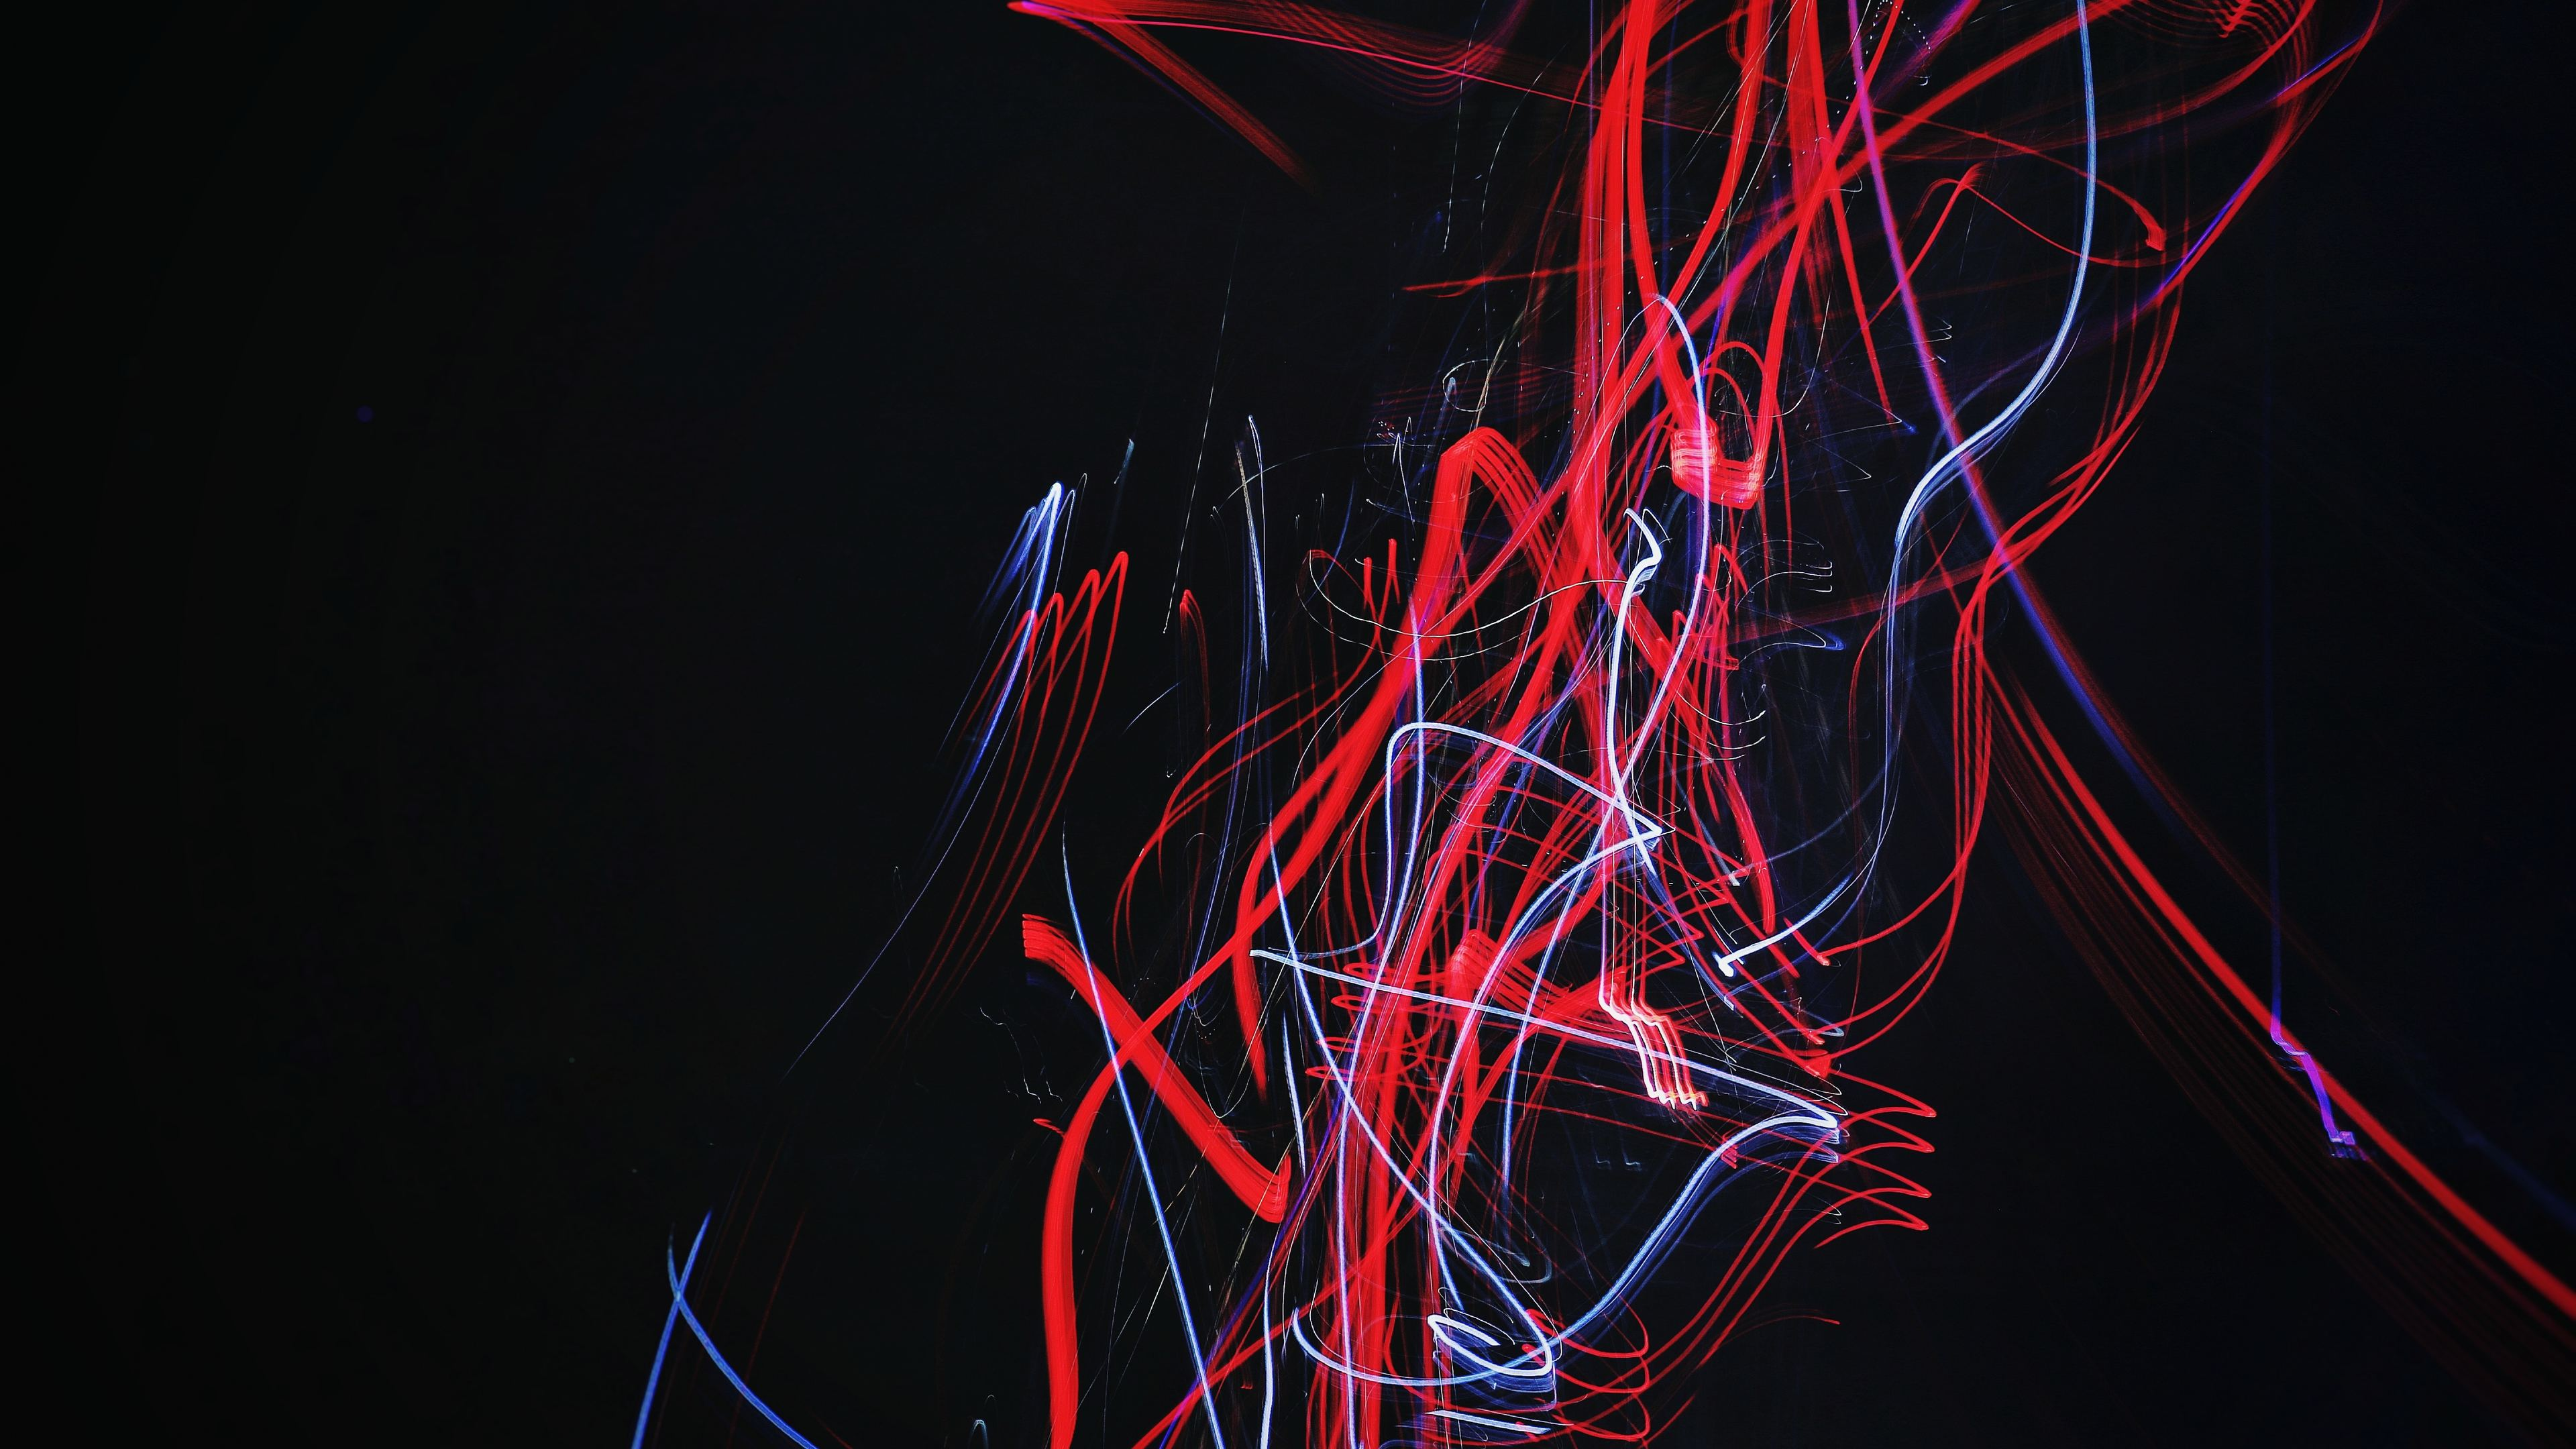 light trail neon abstract 1539371272 - Light Trail Neon Abstract - neon wallpapers, light wallpapers, hd-wallpapers, abstract wallpapers, 5k wallpapers, 4k-wallpapers